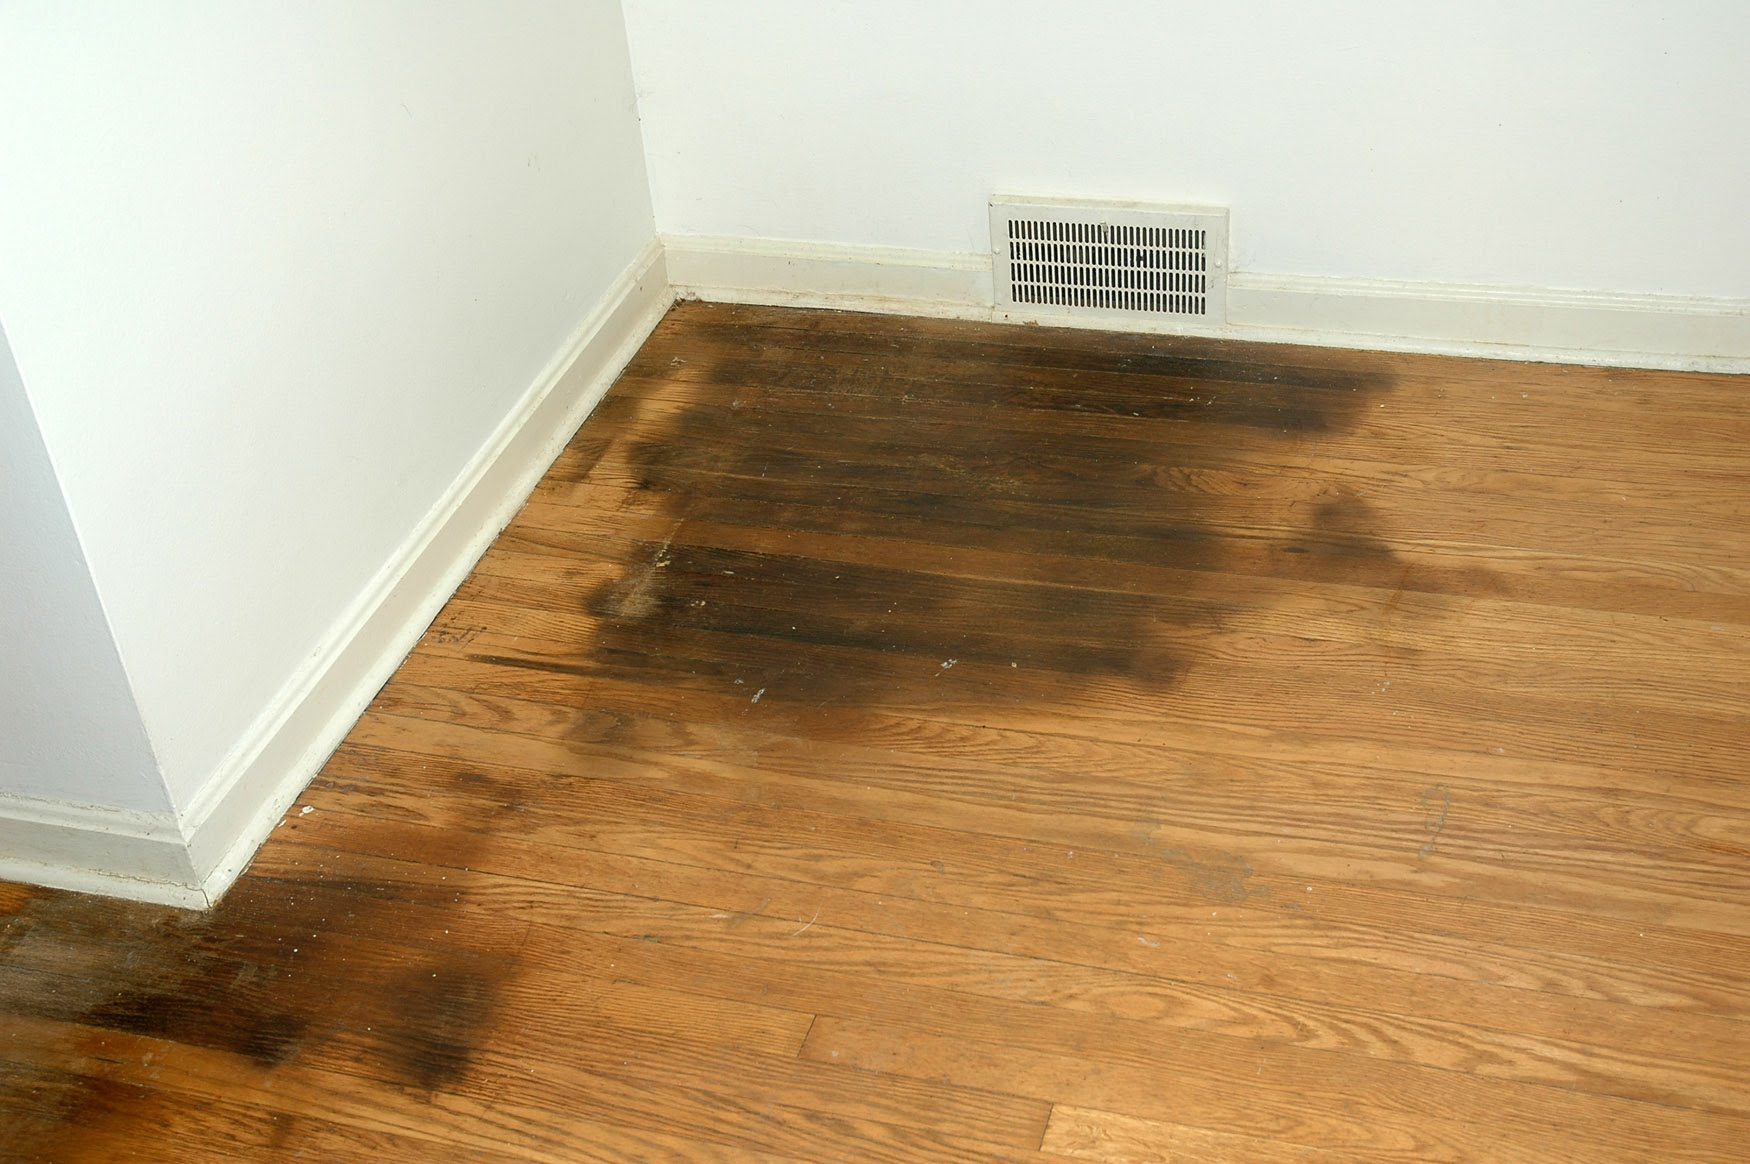 How to remove urine from hardwood floors northside floors dailygadgetfo Choice Image